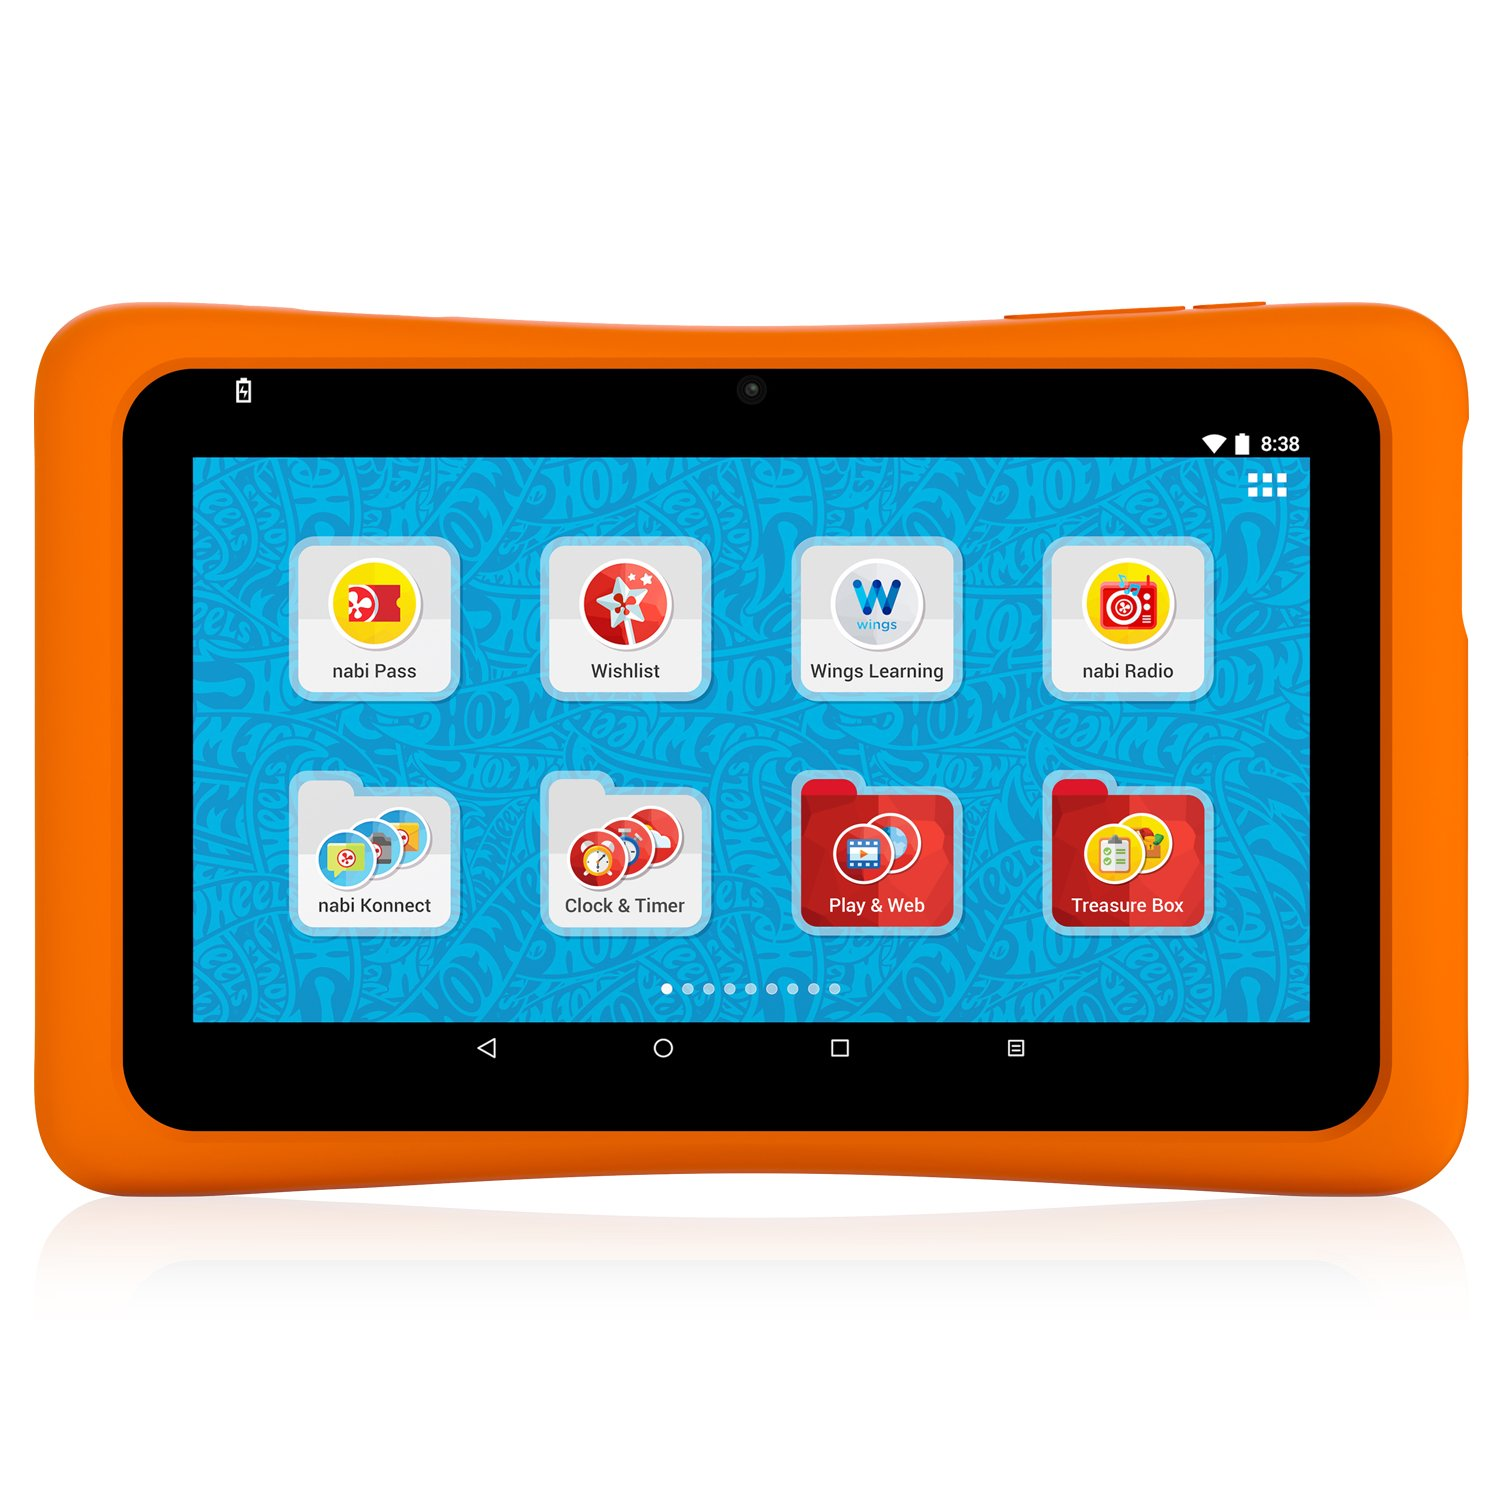 Amazon.com: Hot Wheels Tablet. Powered by nabi: Toys & Games